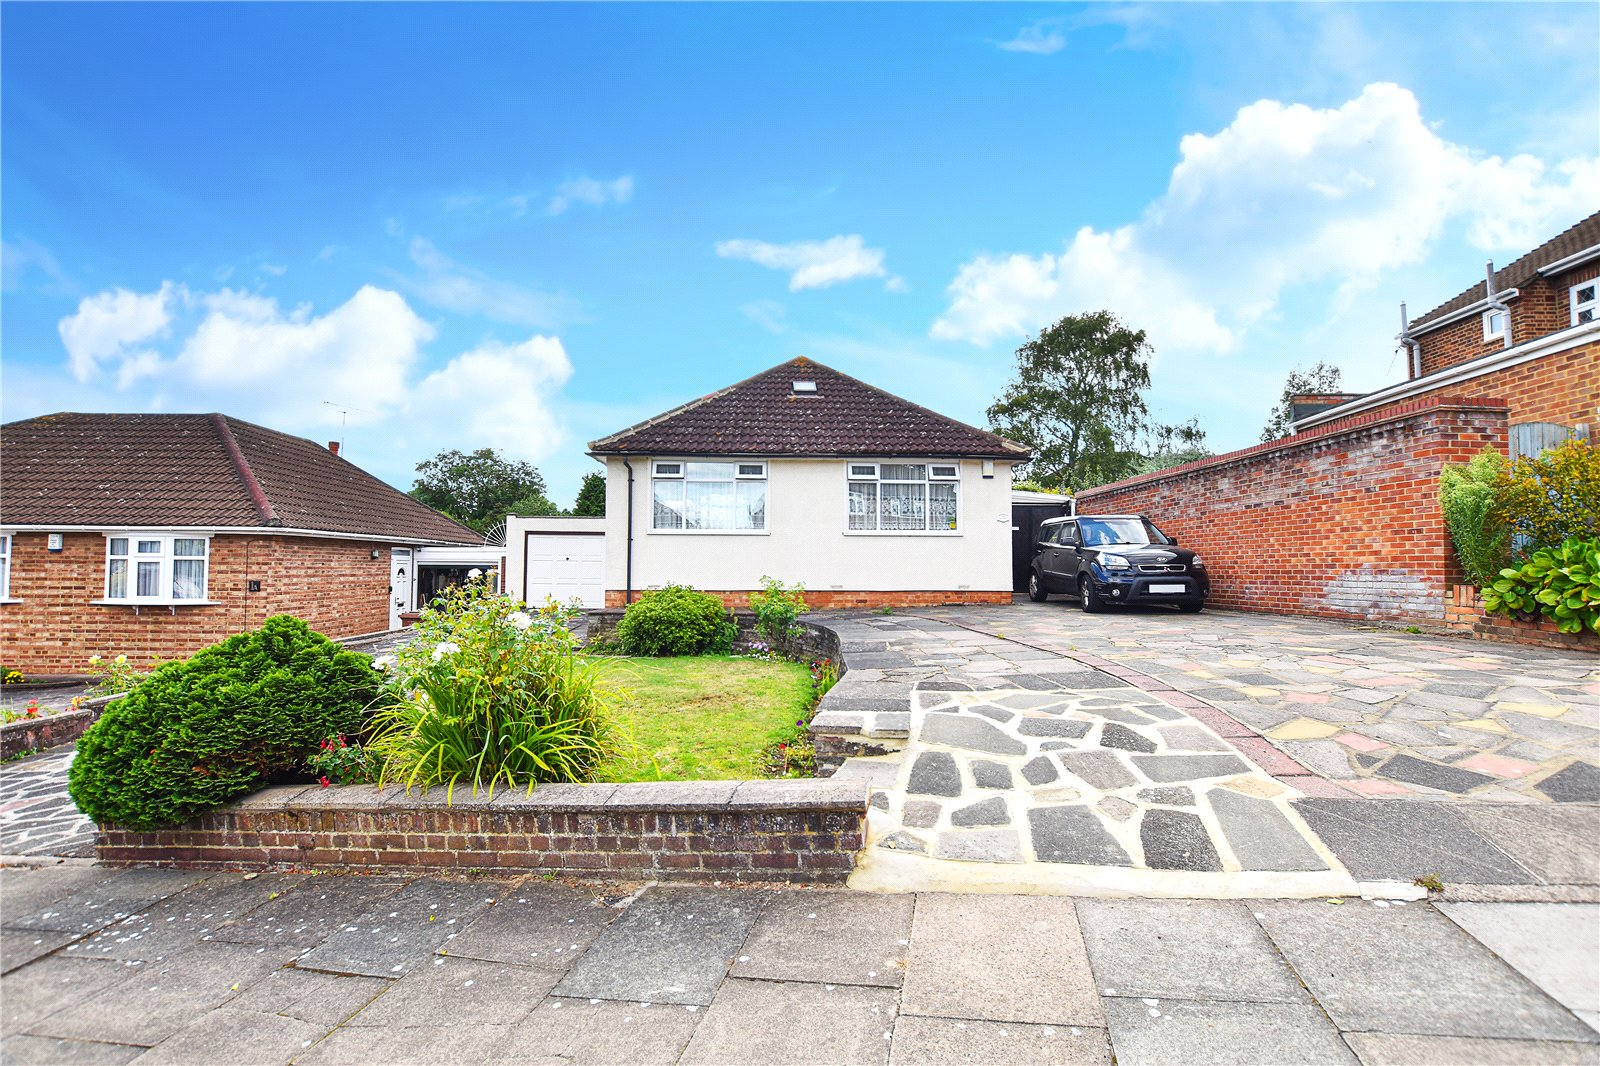 Willow Close, Bexley, Kent, DA5